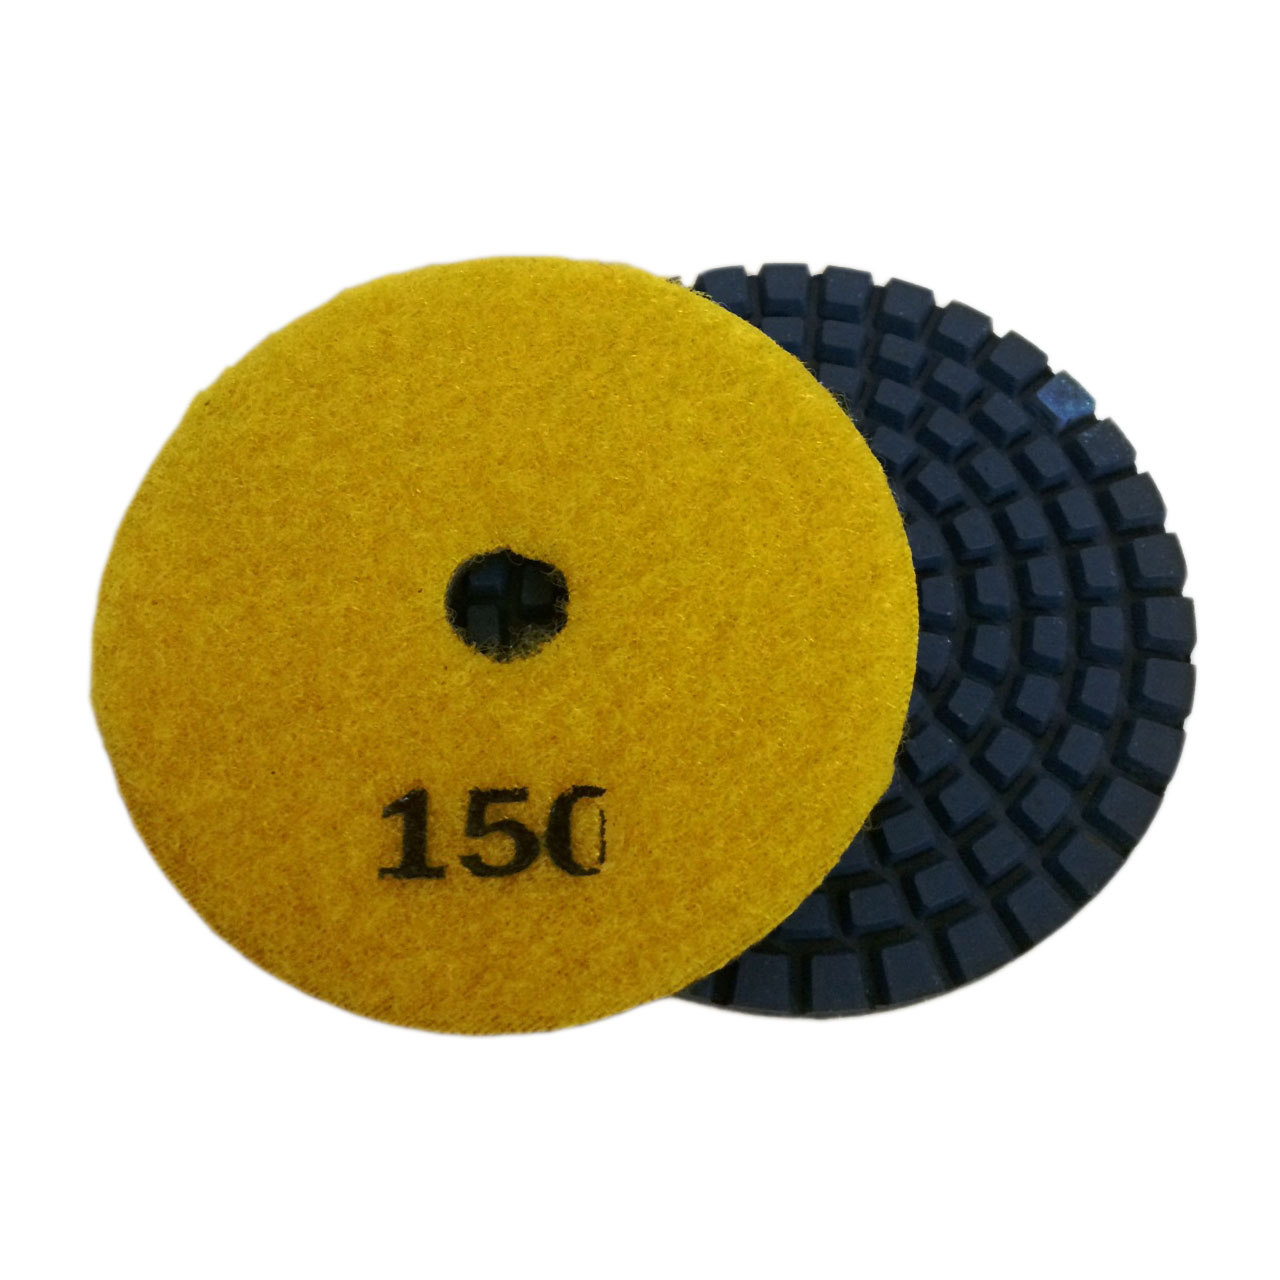 3 Inch 150 Grit Diamond Disc to fit a Flex Angle Grinder